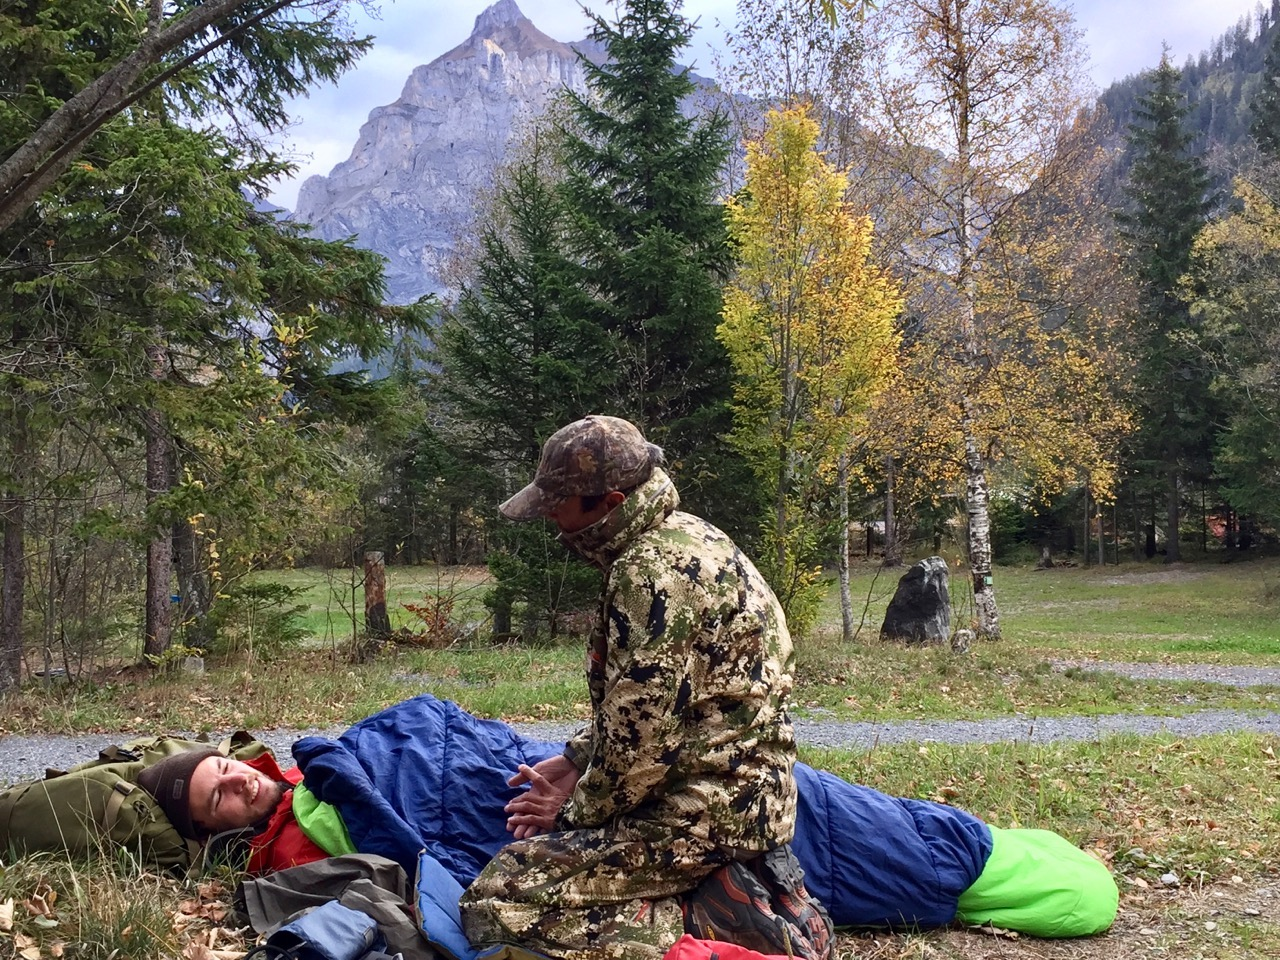 NOLS Wilderness Medicine student practices caring for a patient wrapped in a sleeping bag in the mountains